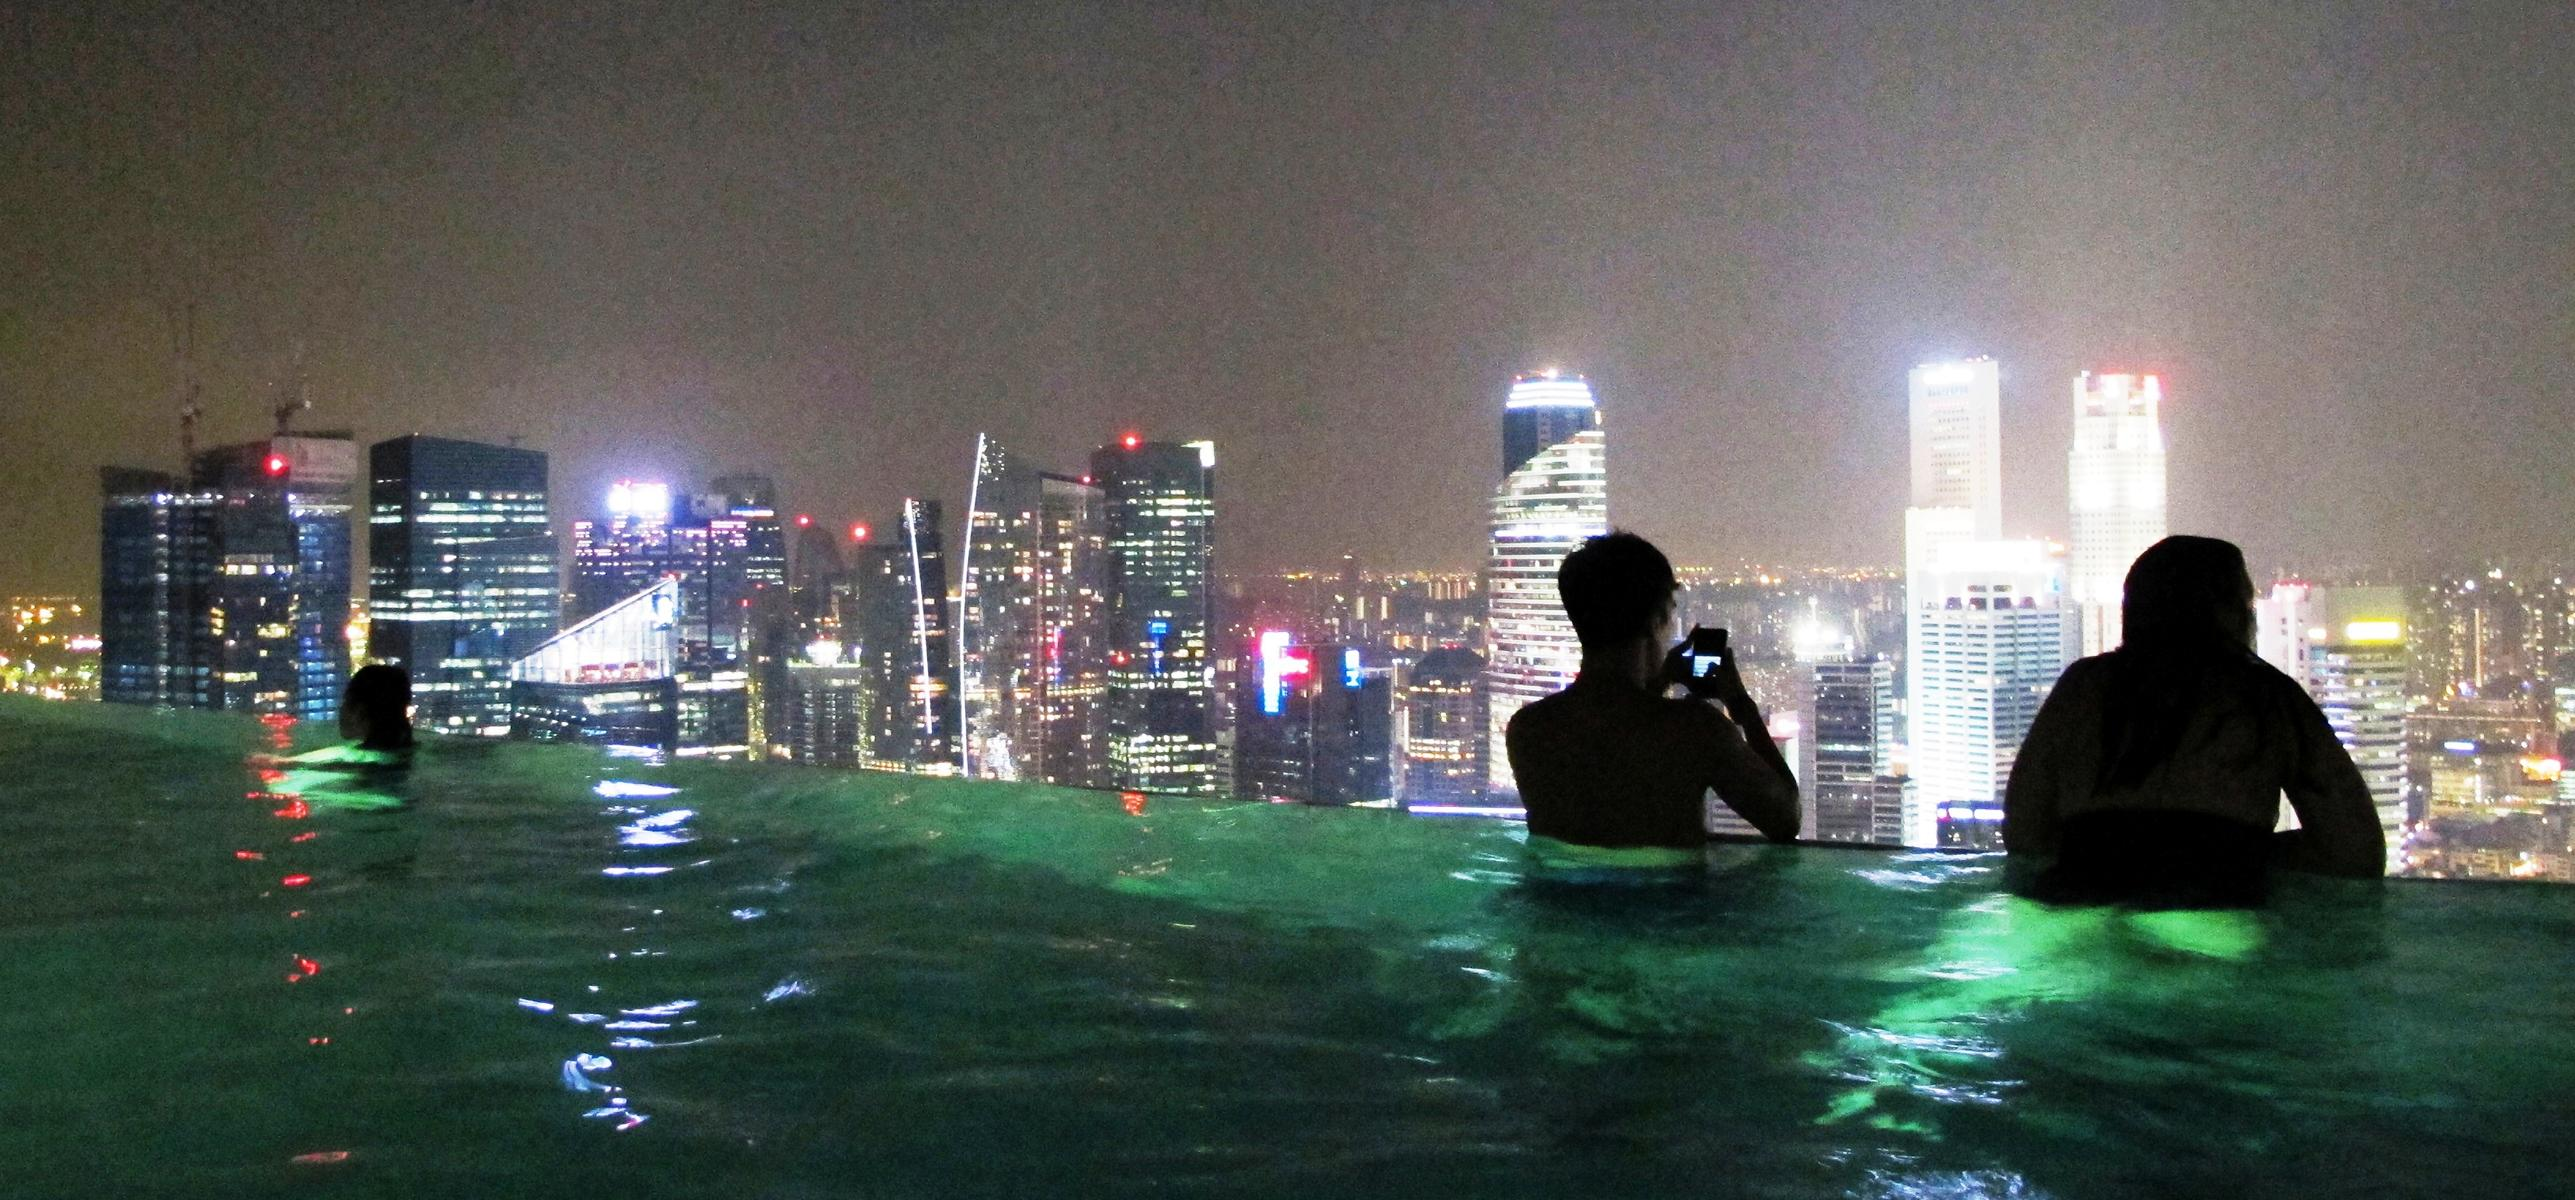 Singapur: Marina Bay Sands – Pool Position beim Nacht-GP